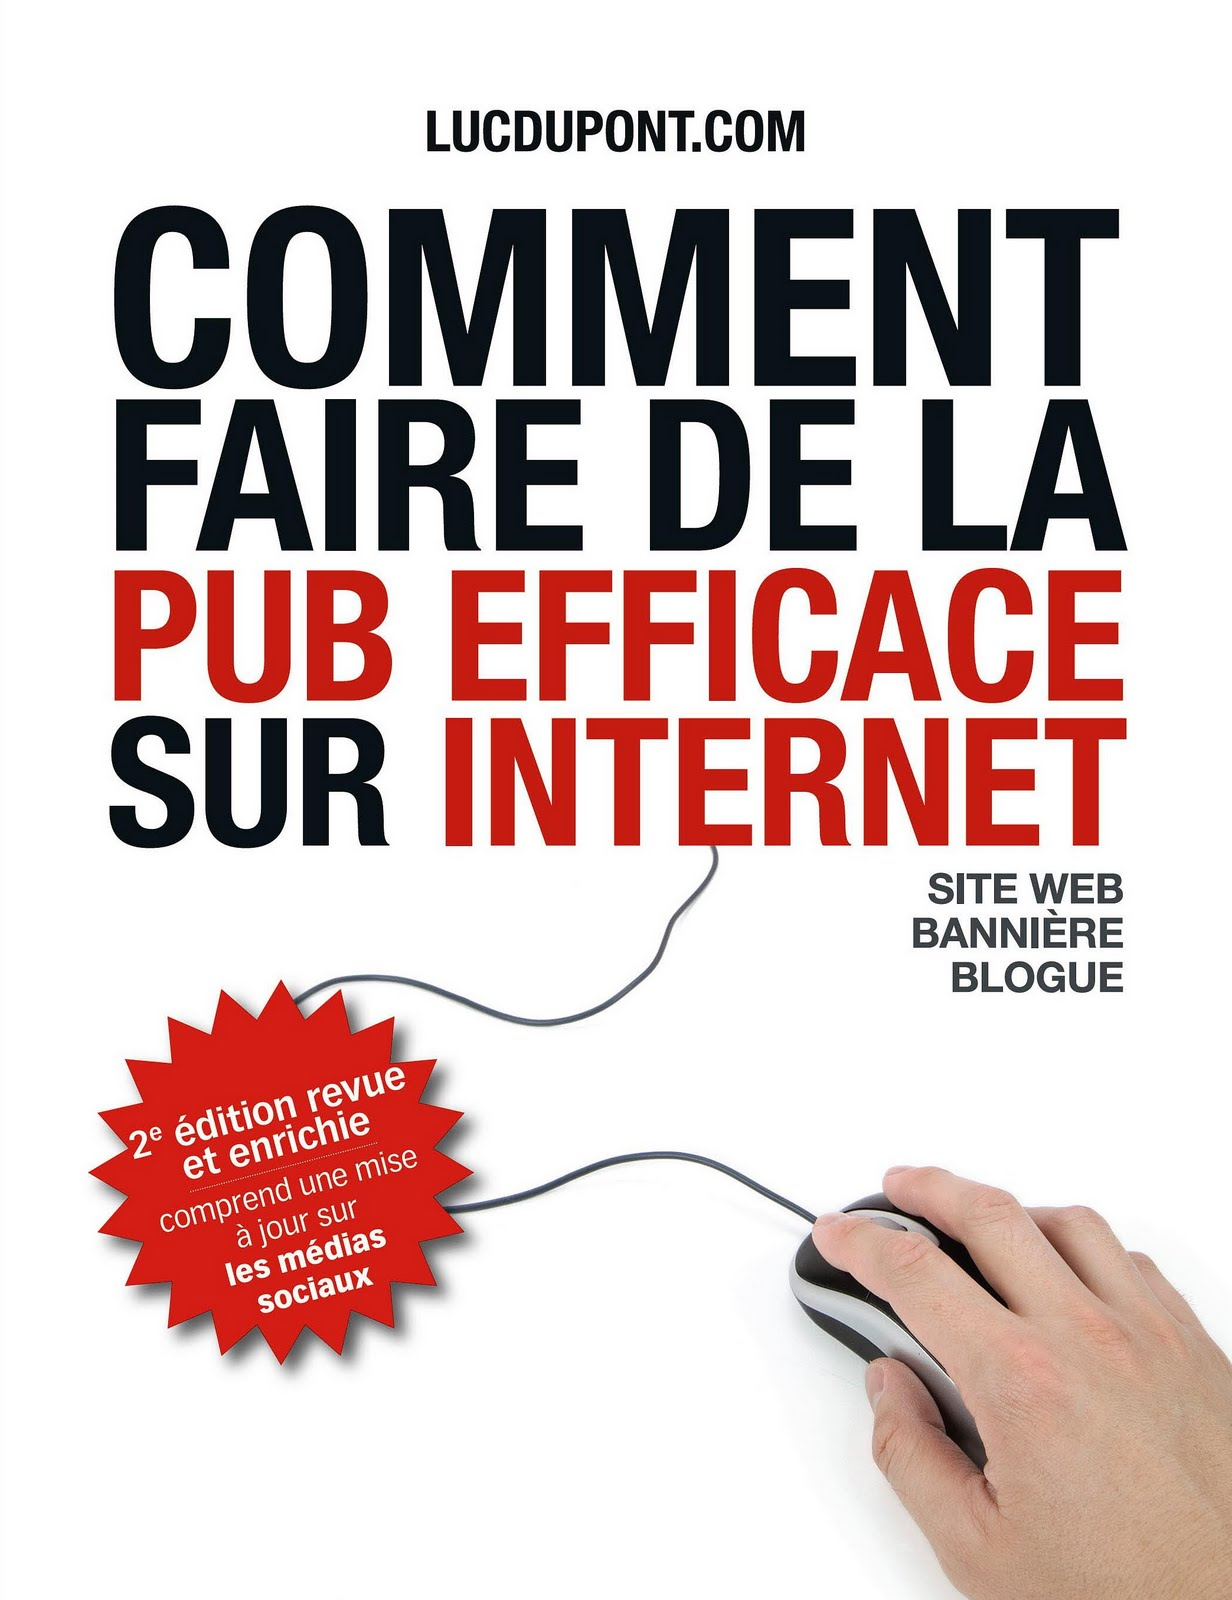 https://forum.tomsguide.fr/threads/comment-faire-pour-se-d%C3%A9barasser-des-pubs-intempestives-sur-mozilla-firefox.679247/